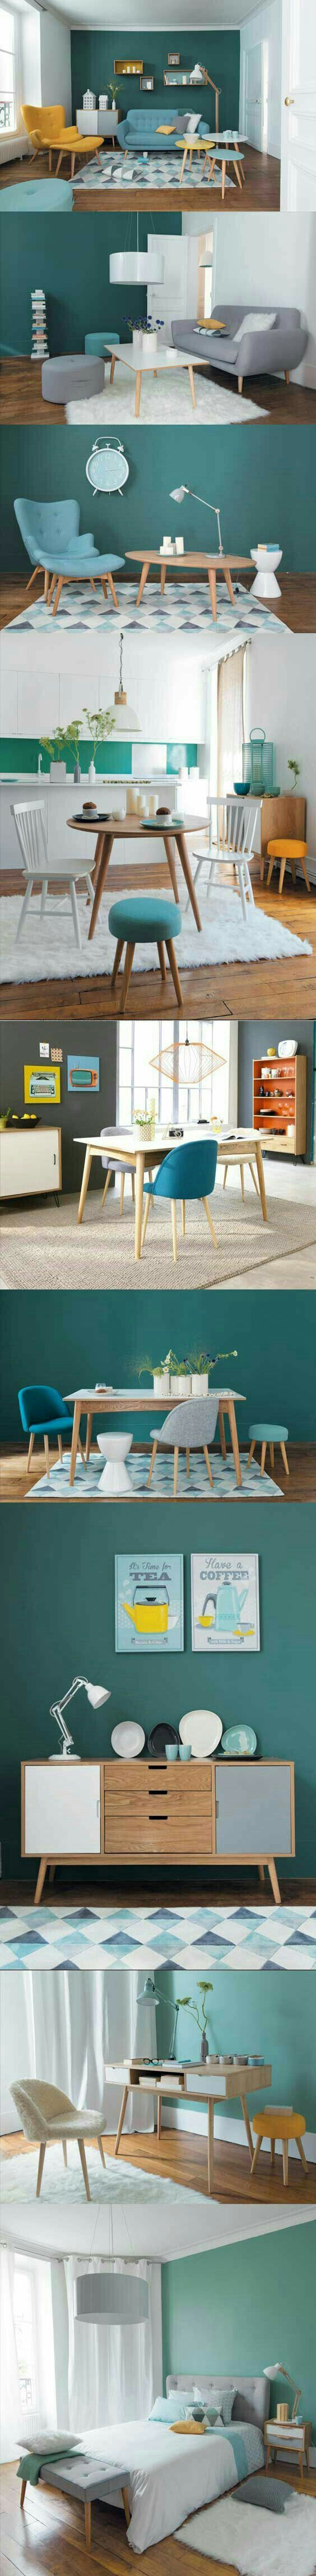 Tons of gorgeous teal and turquoise home decor inspiration